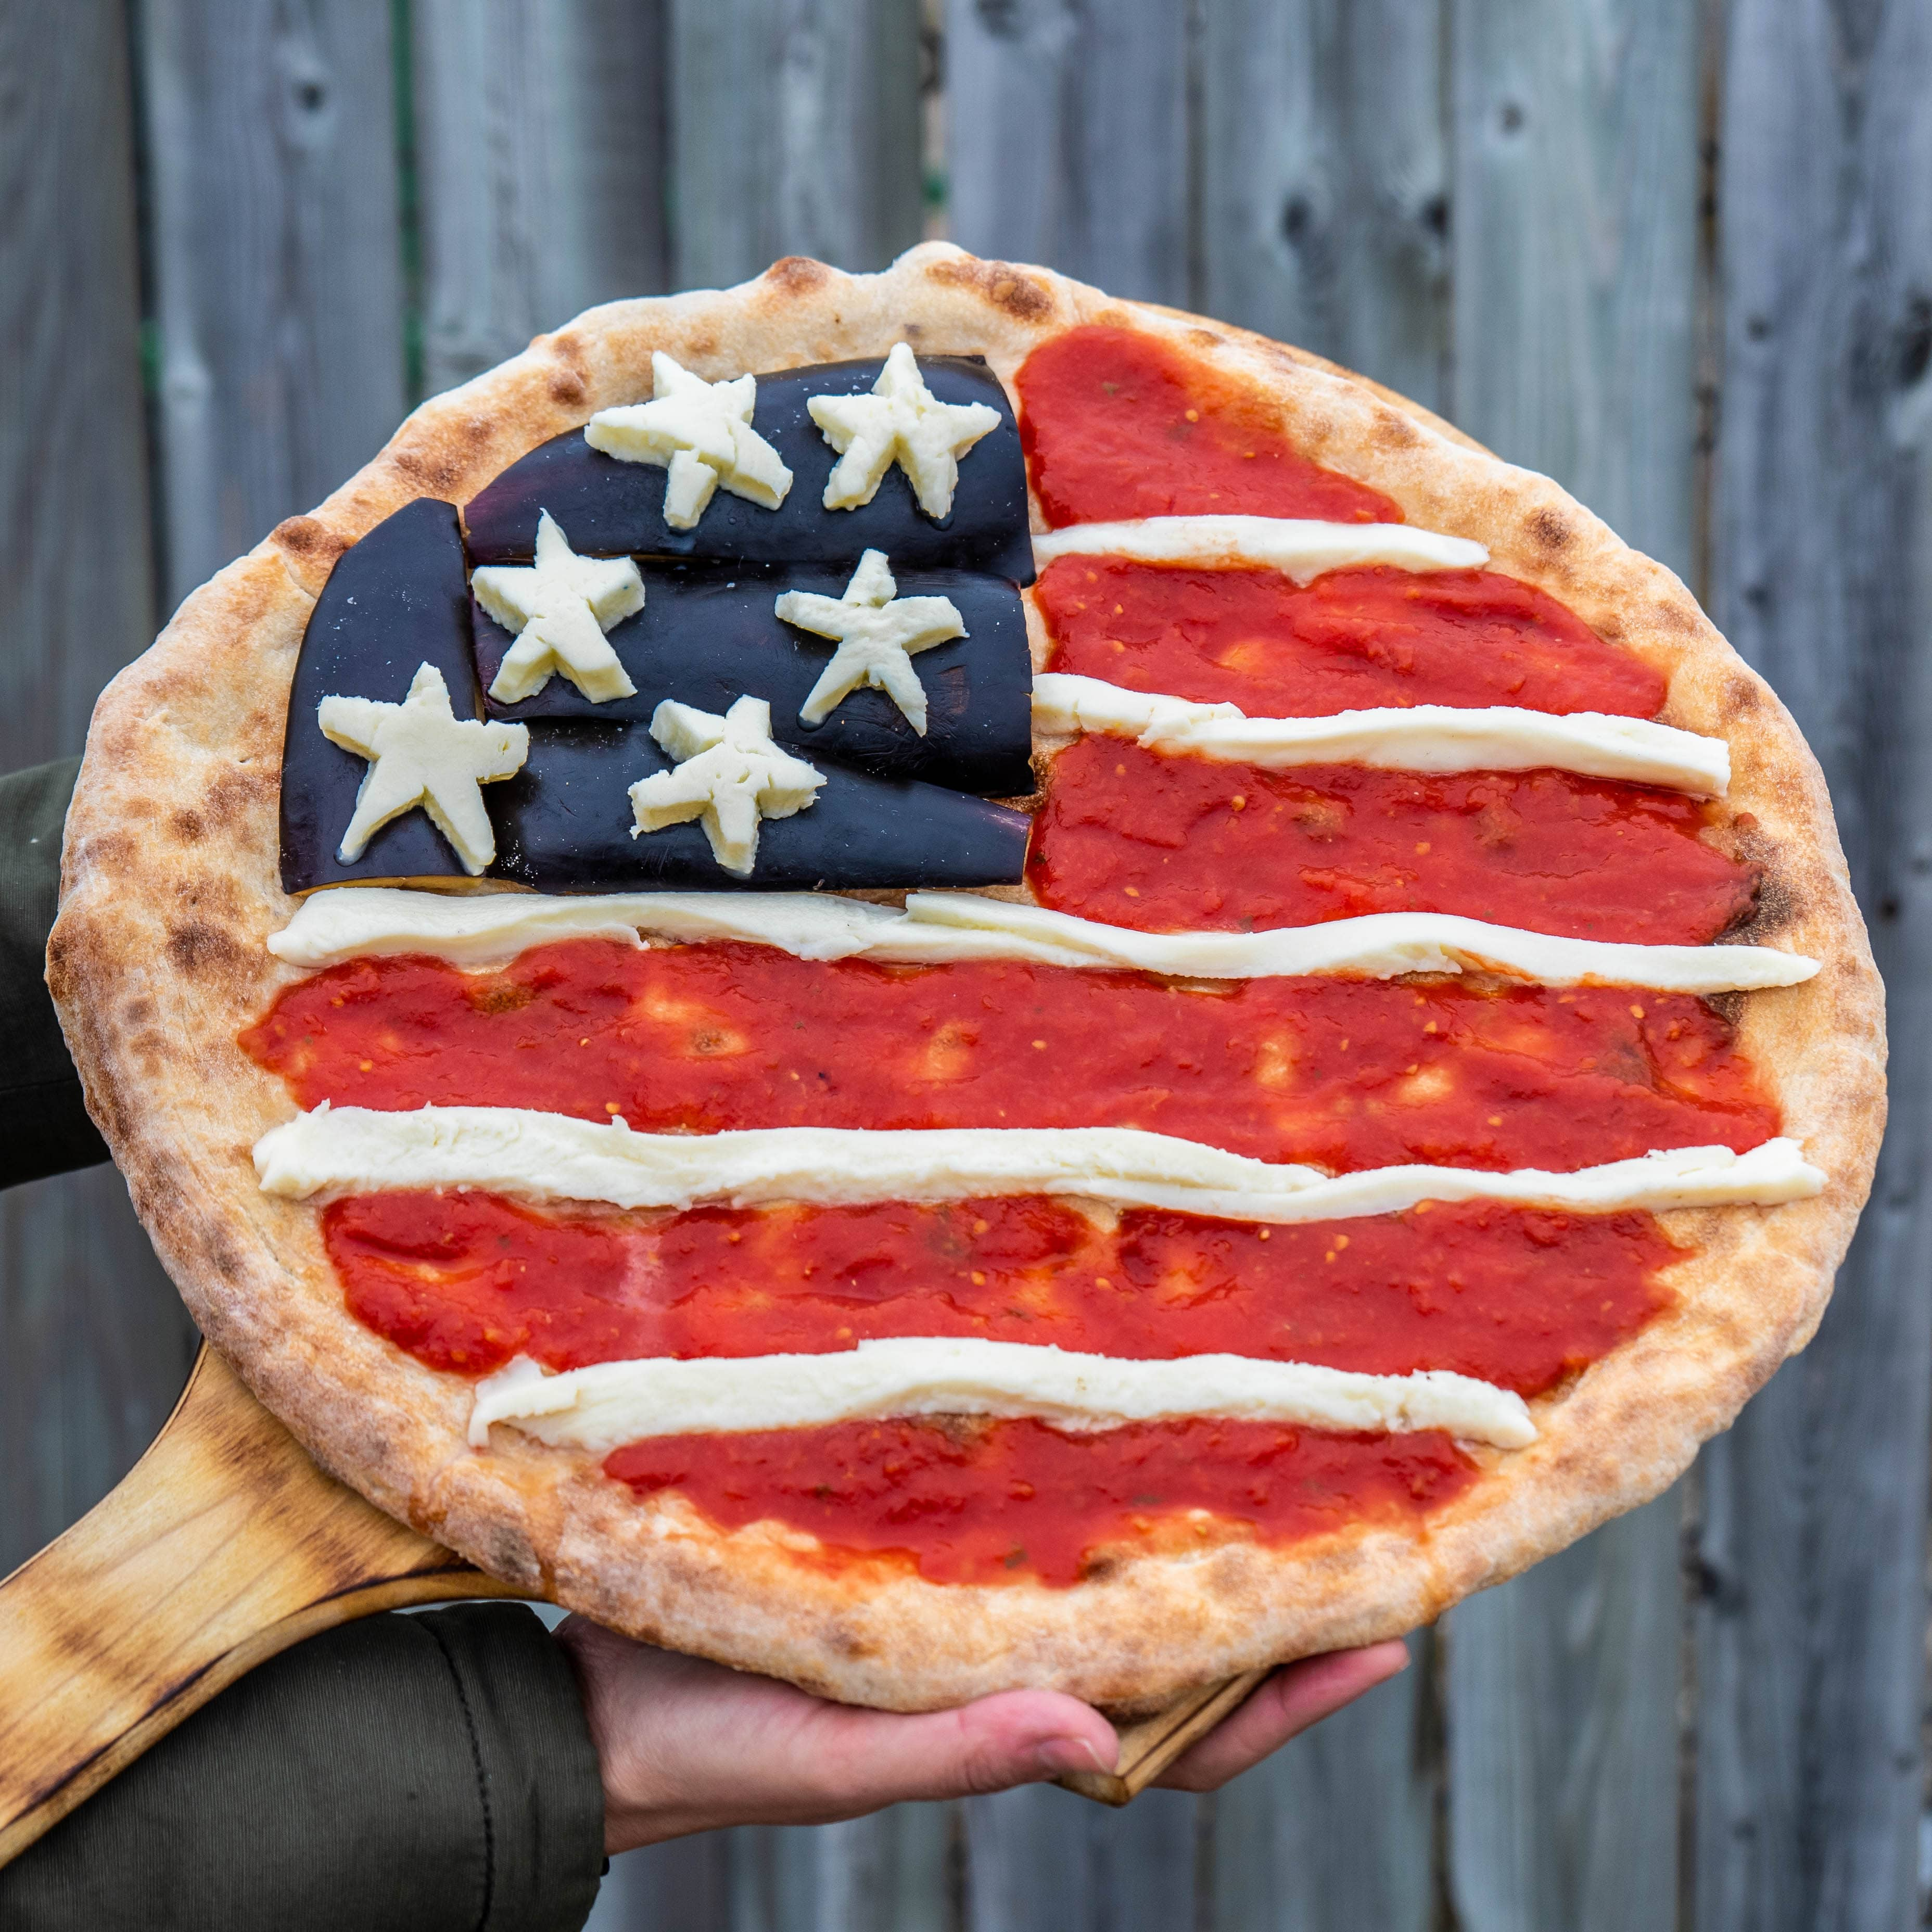 American Flag themed pizza with eggplant, cheese starts, and tomato sauce